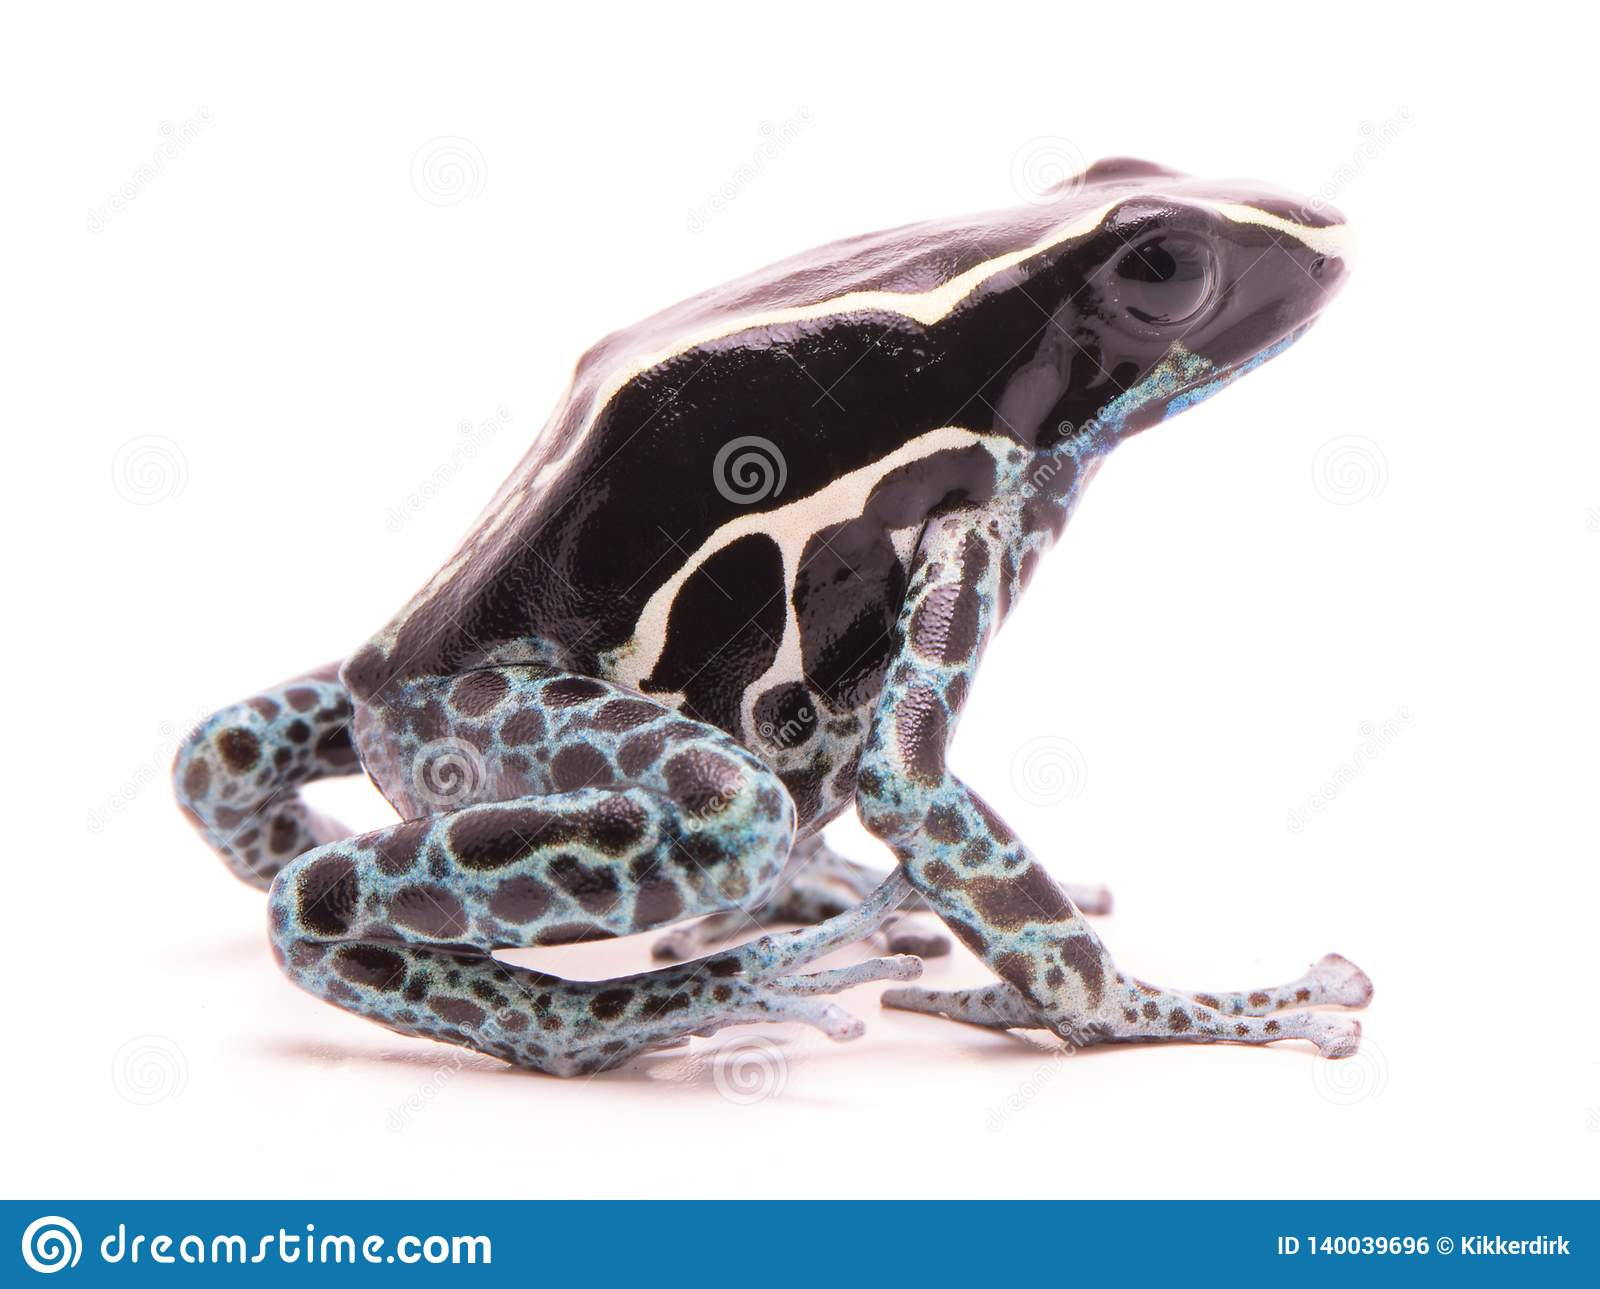 Deying poison dart frog, Dendrobates tinctorius powder blue